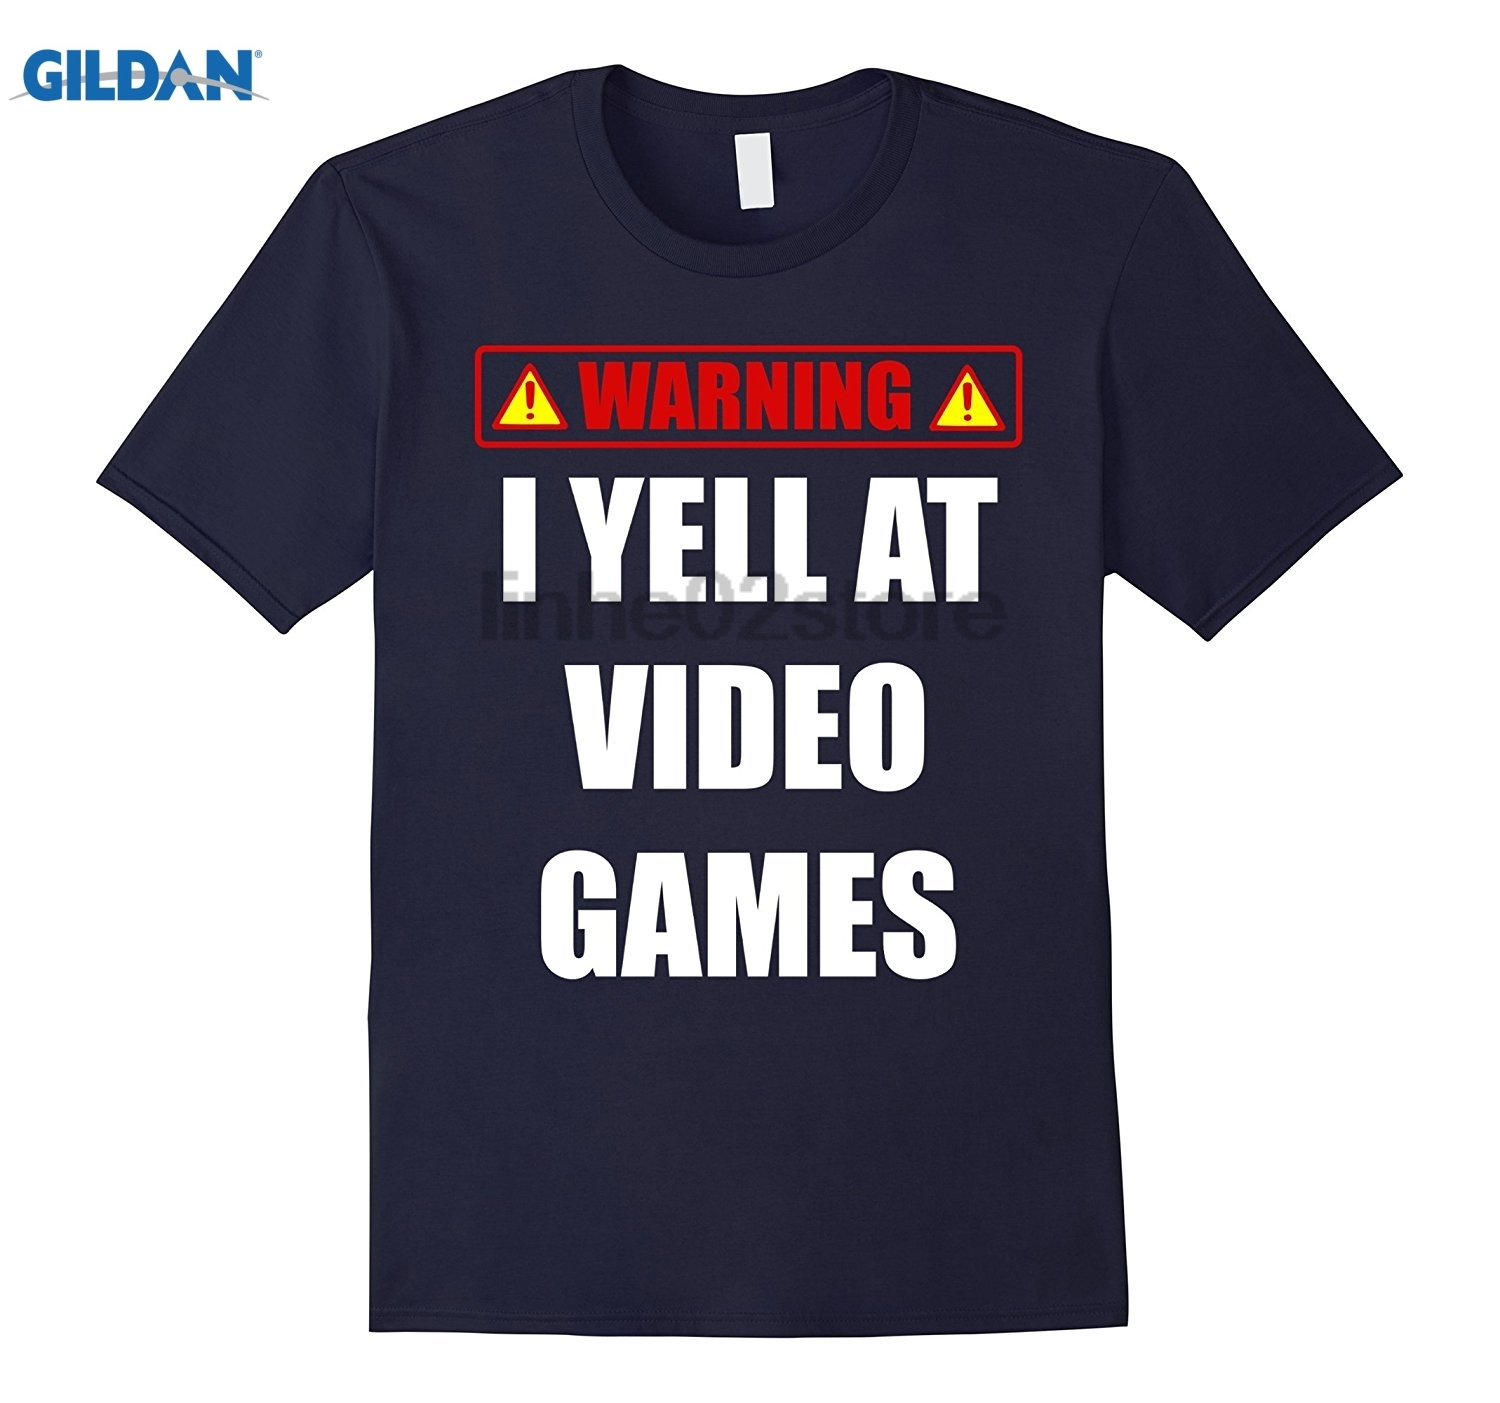 GILDAN Yell at Video Games Funny Angry Frustrated Gamer T Shirt Hot Womens T-shirt